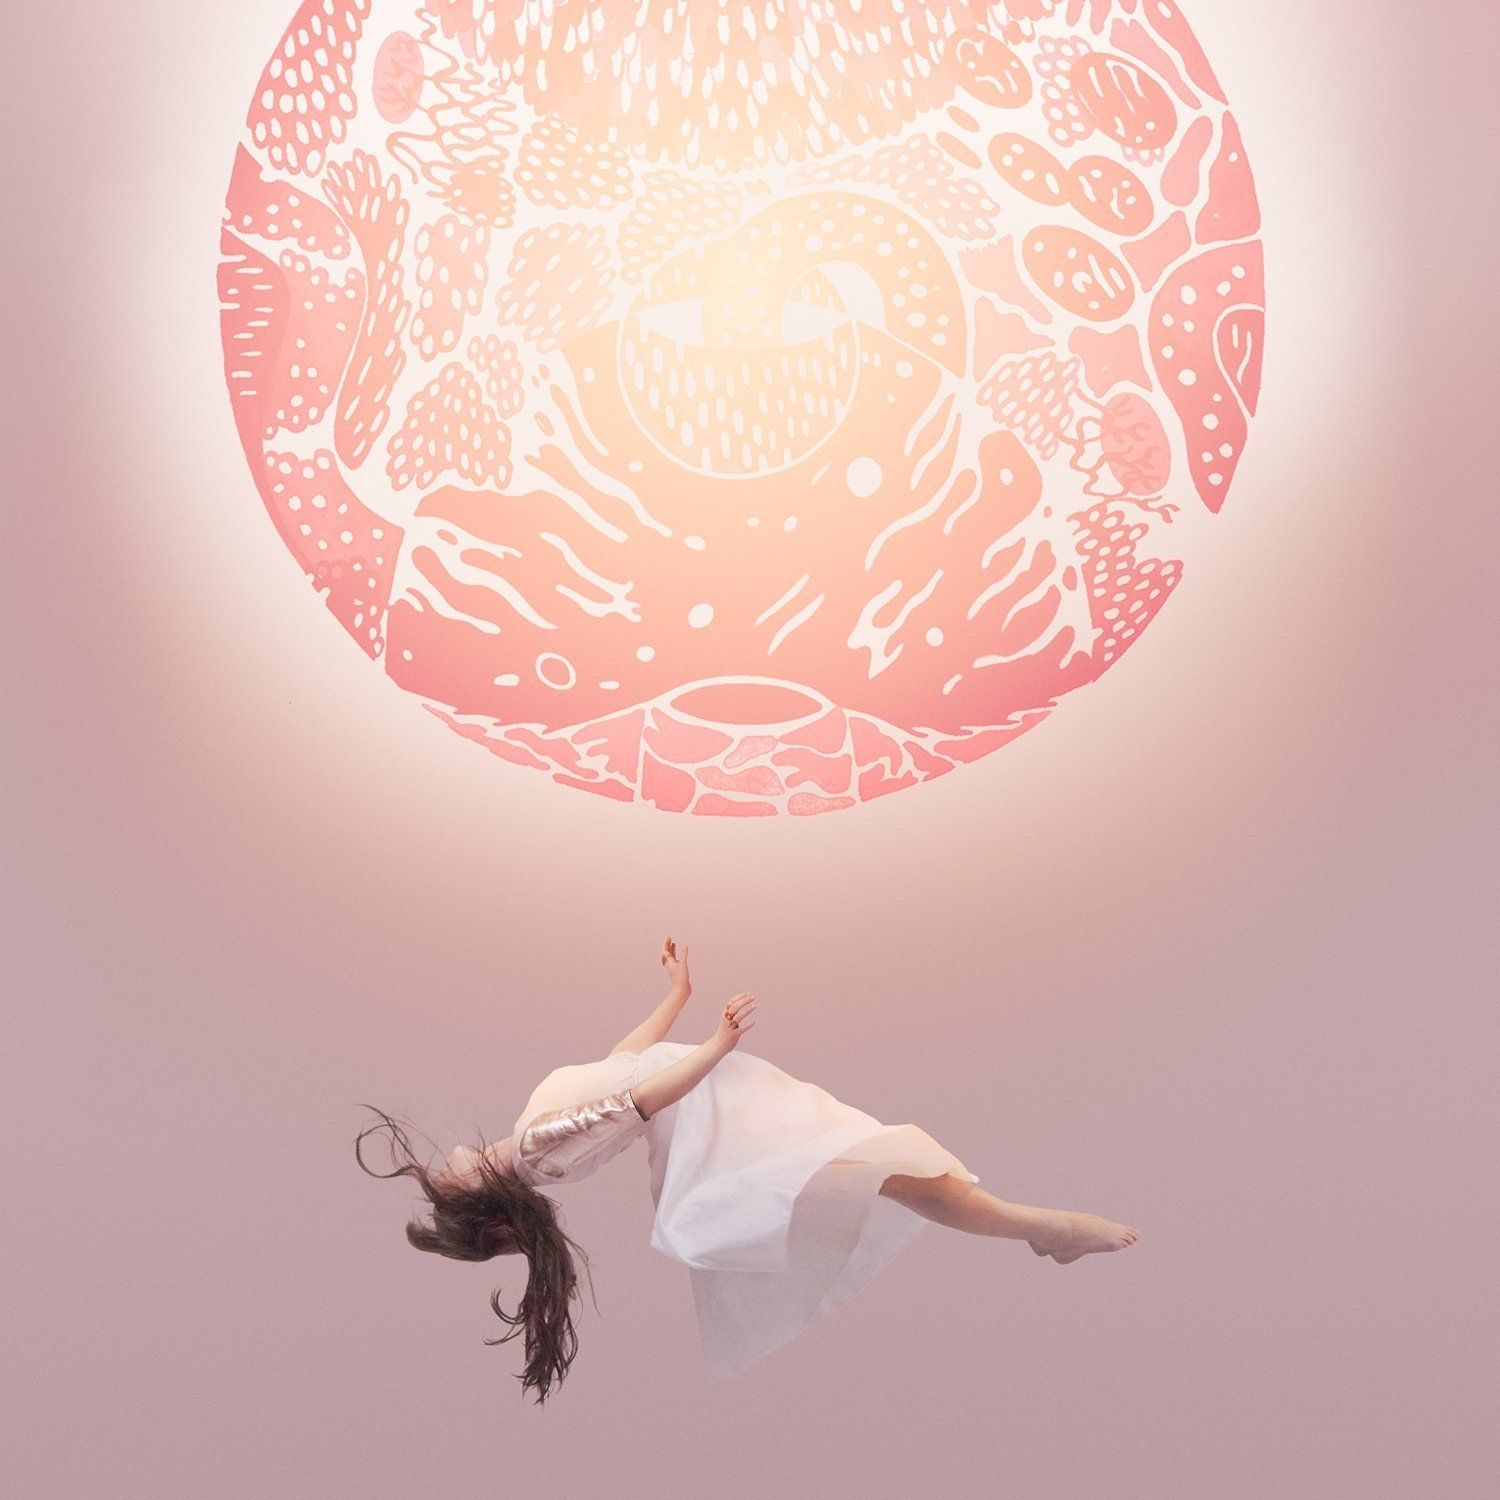 Purity Ring - Another Eternity album cover